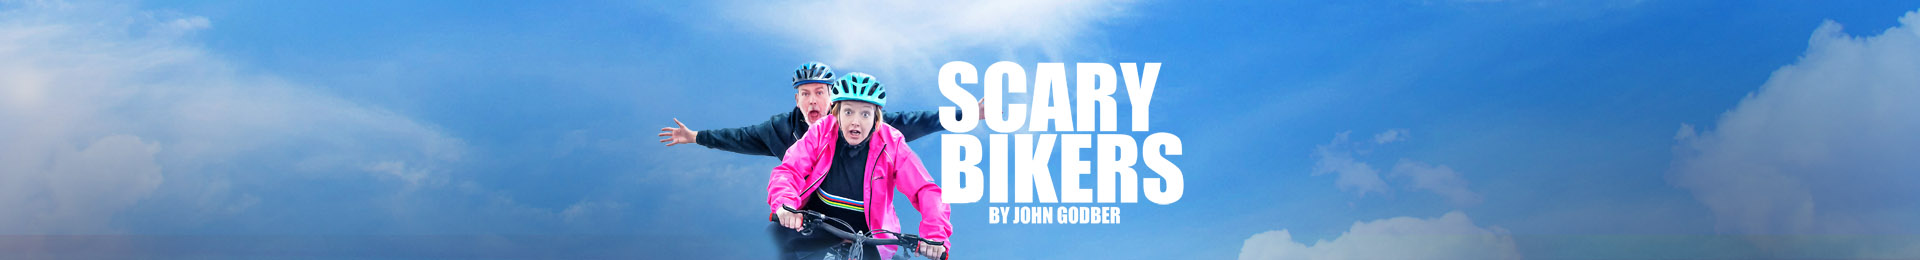 The Scary Bikers banner image